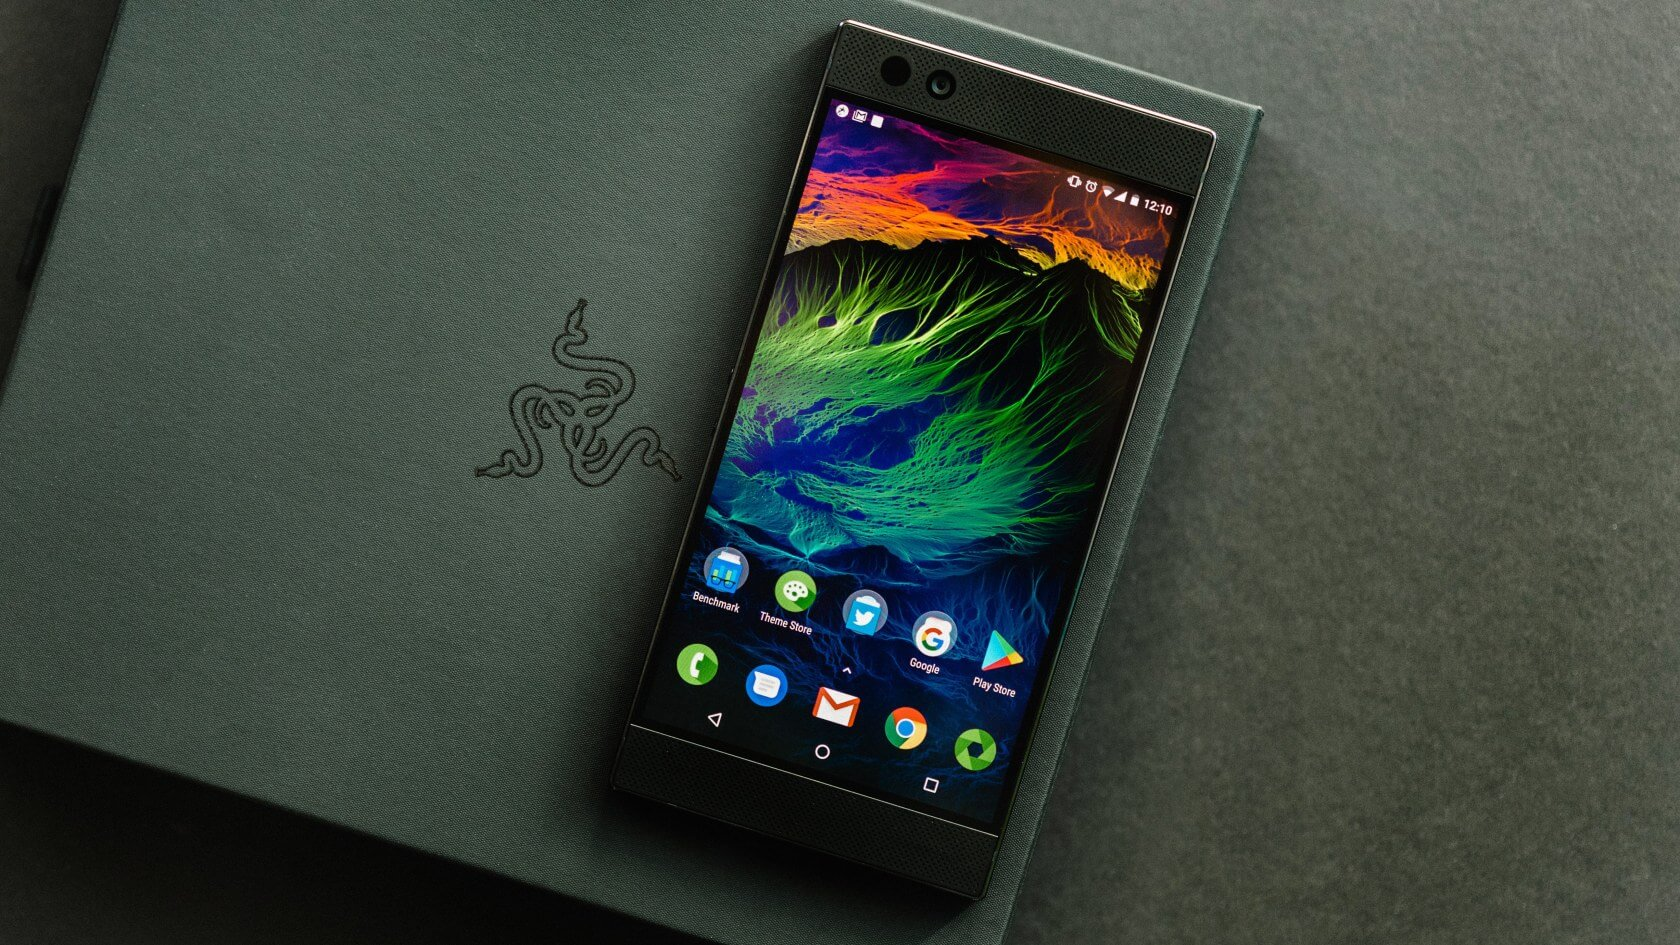 Razer Phone 2 officially announced along with a mobile gamepad